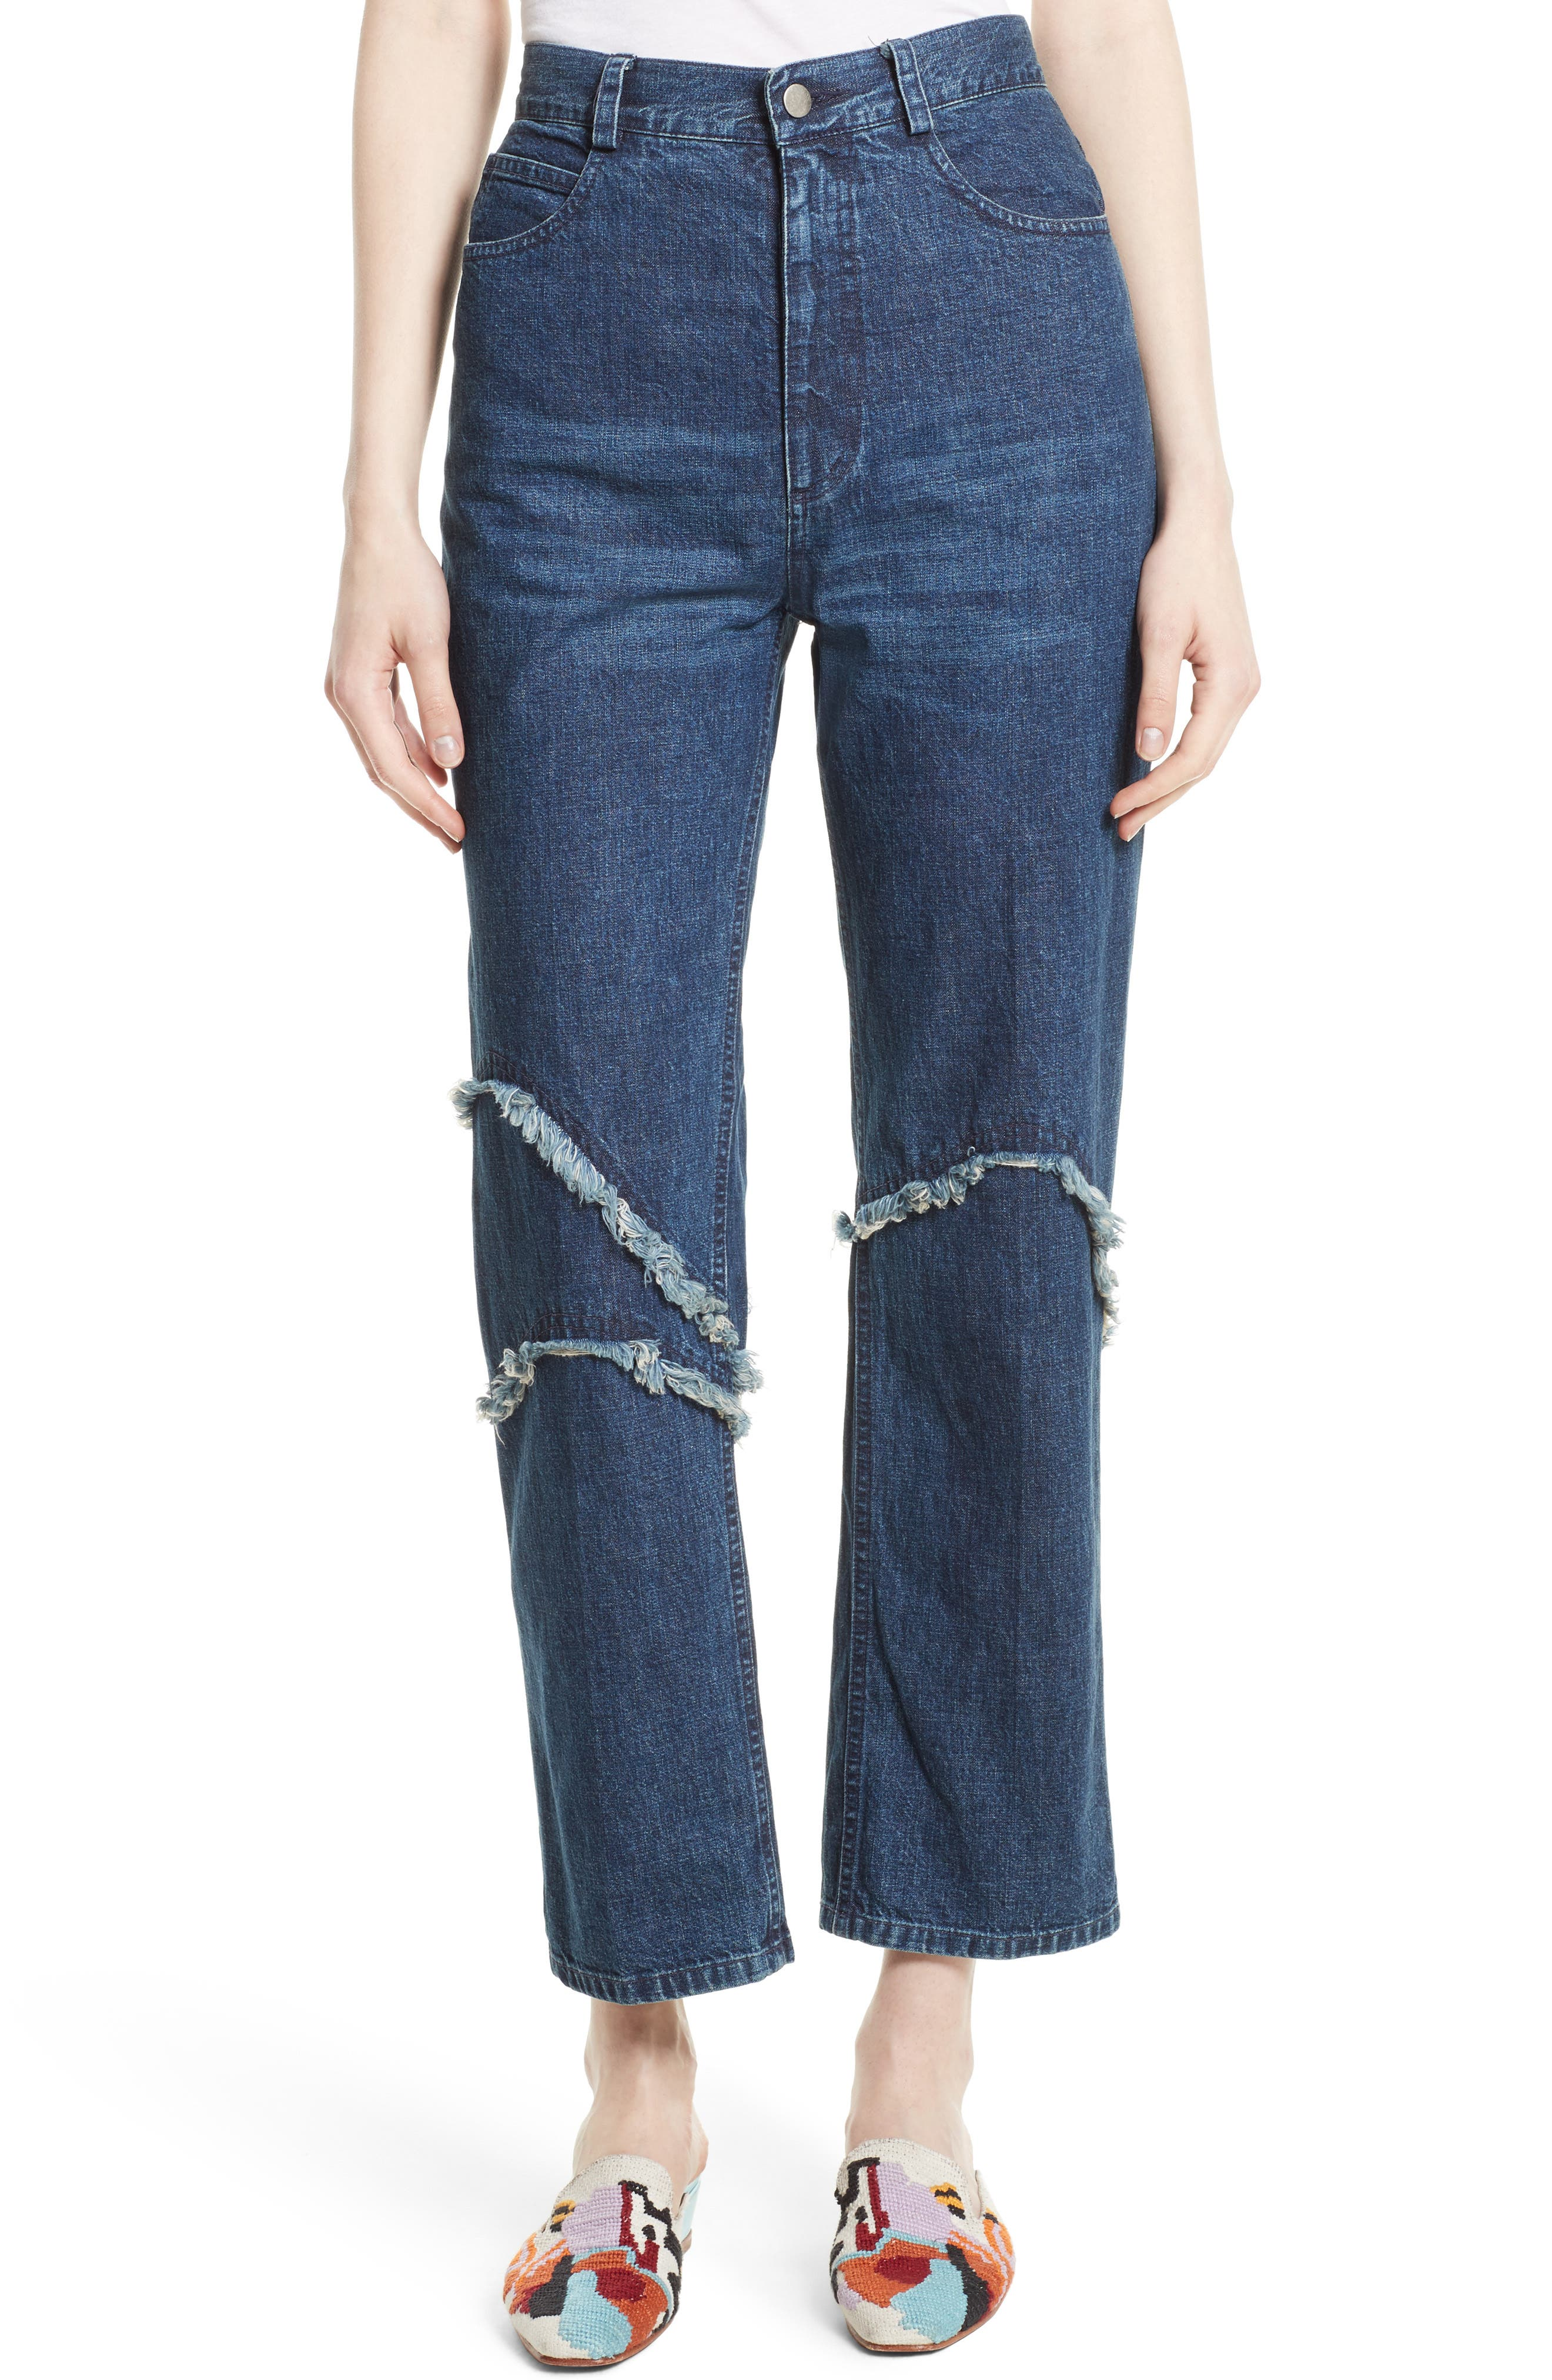 Ticklers Frayed High Waist Crop Jeans,                             Main thumbnail 1, color,                             420